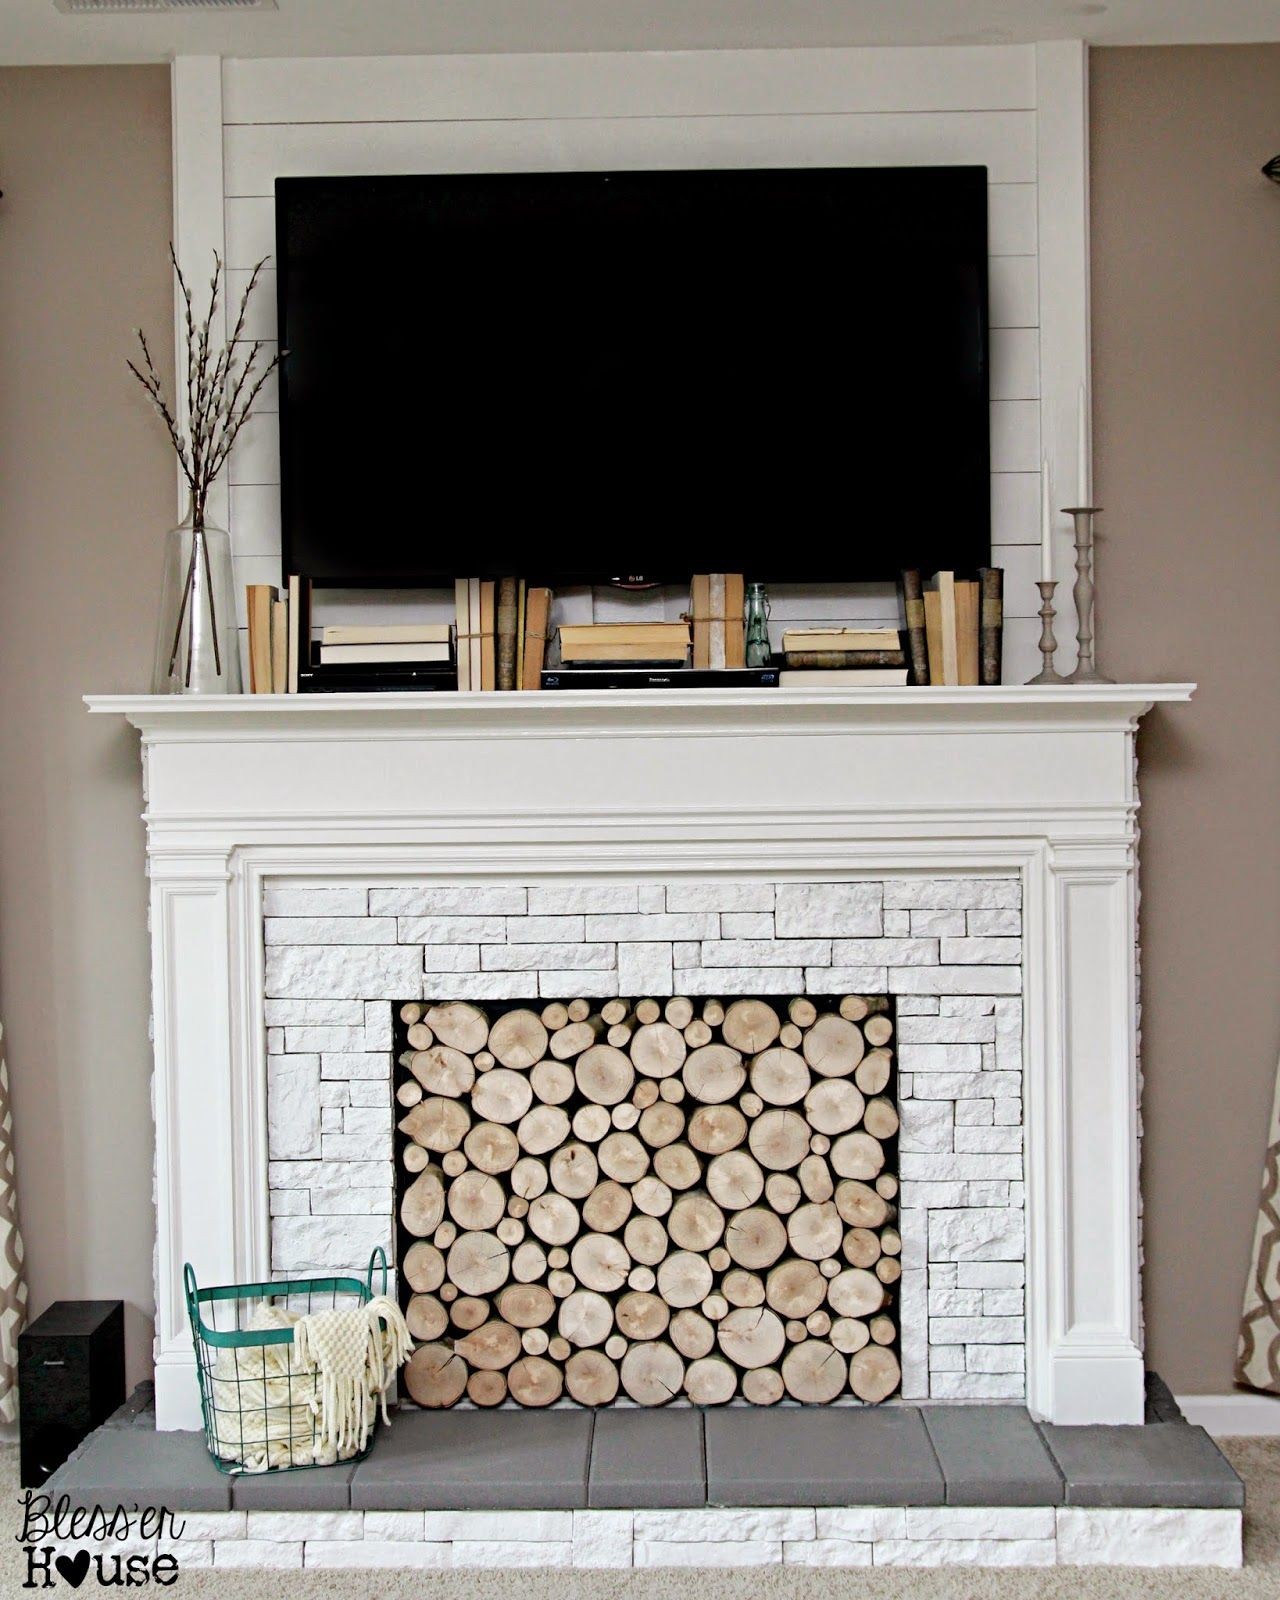 Diy faux fireplace for under the big reveal fireplace